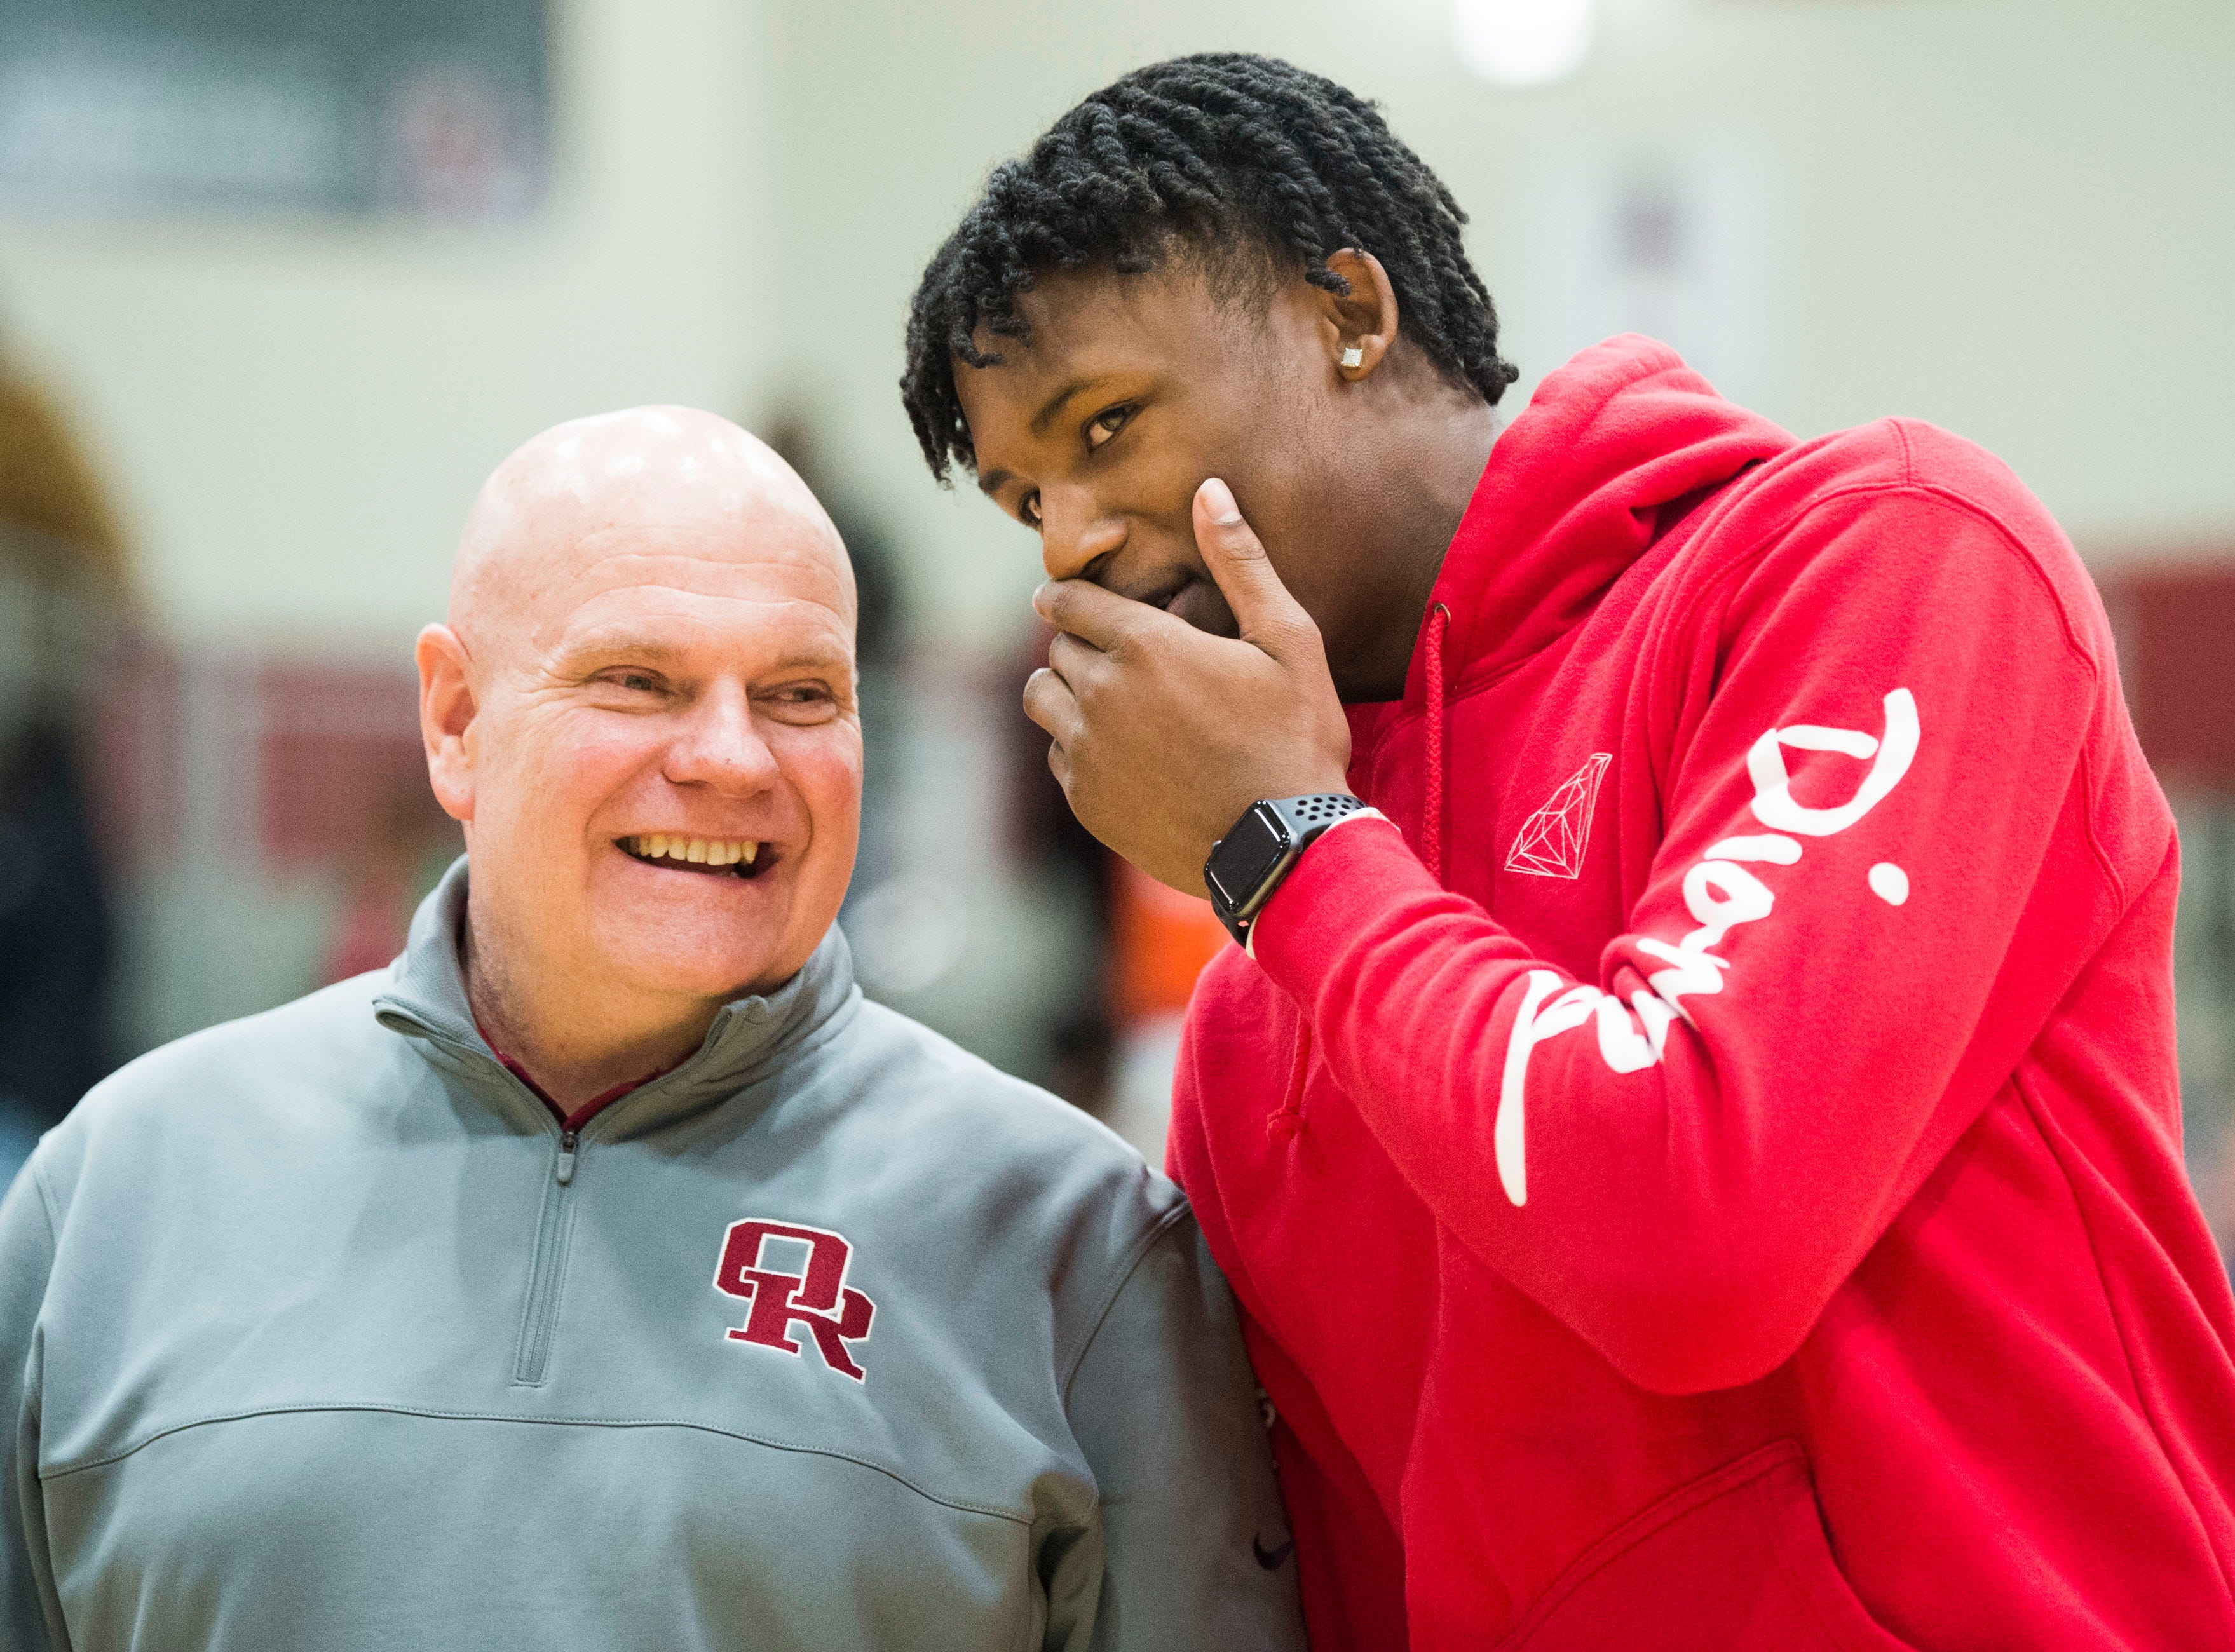 From left Oak Ridge High School athletic director Mike Mullins listens as former Oak Ridge High School athlete Tee Higgins, now a wide receiver at Clemson University, whispers to him, as Higgin's jersey is retired during a high school basketball game between Oak Ridge and Campbell County at Oak Ridge Friday, Feb. 1, 2019.